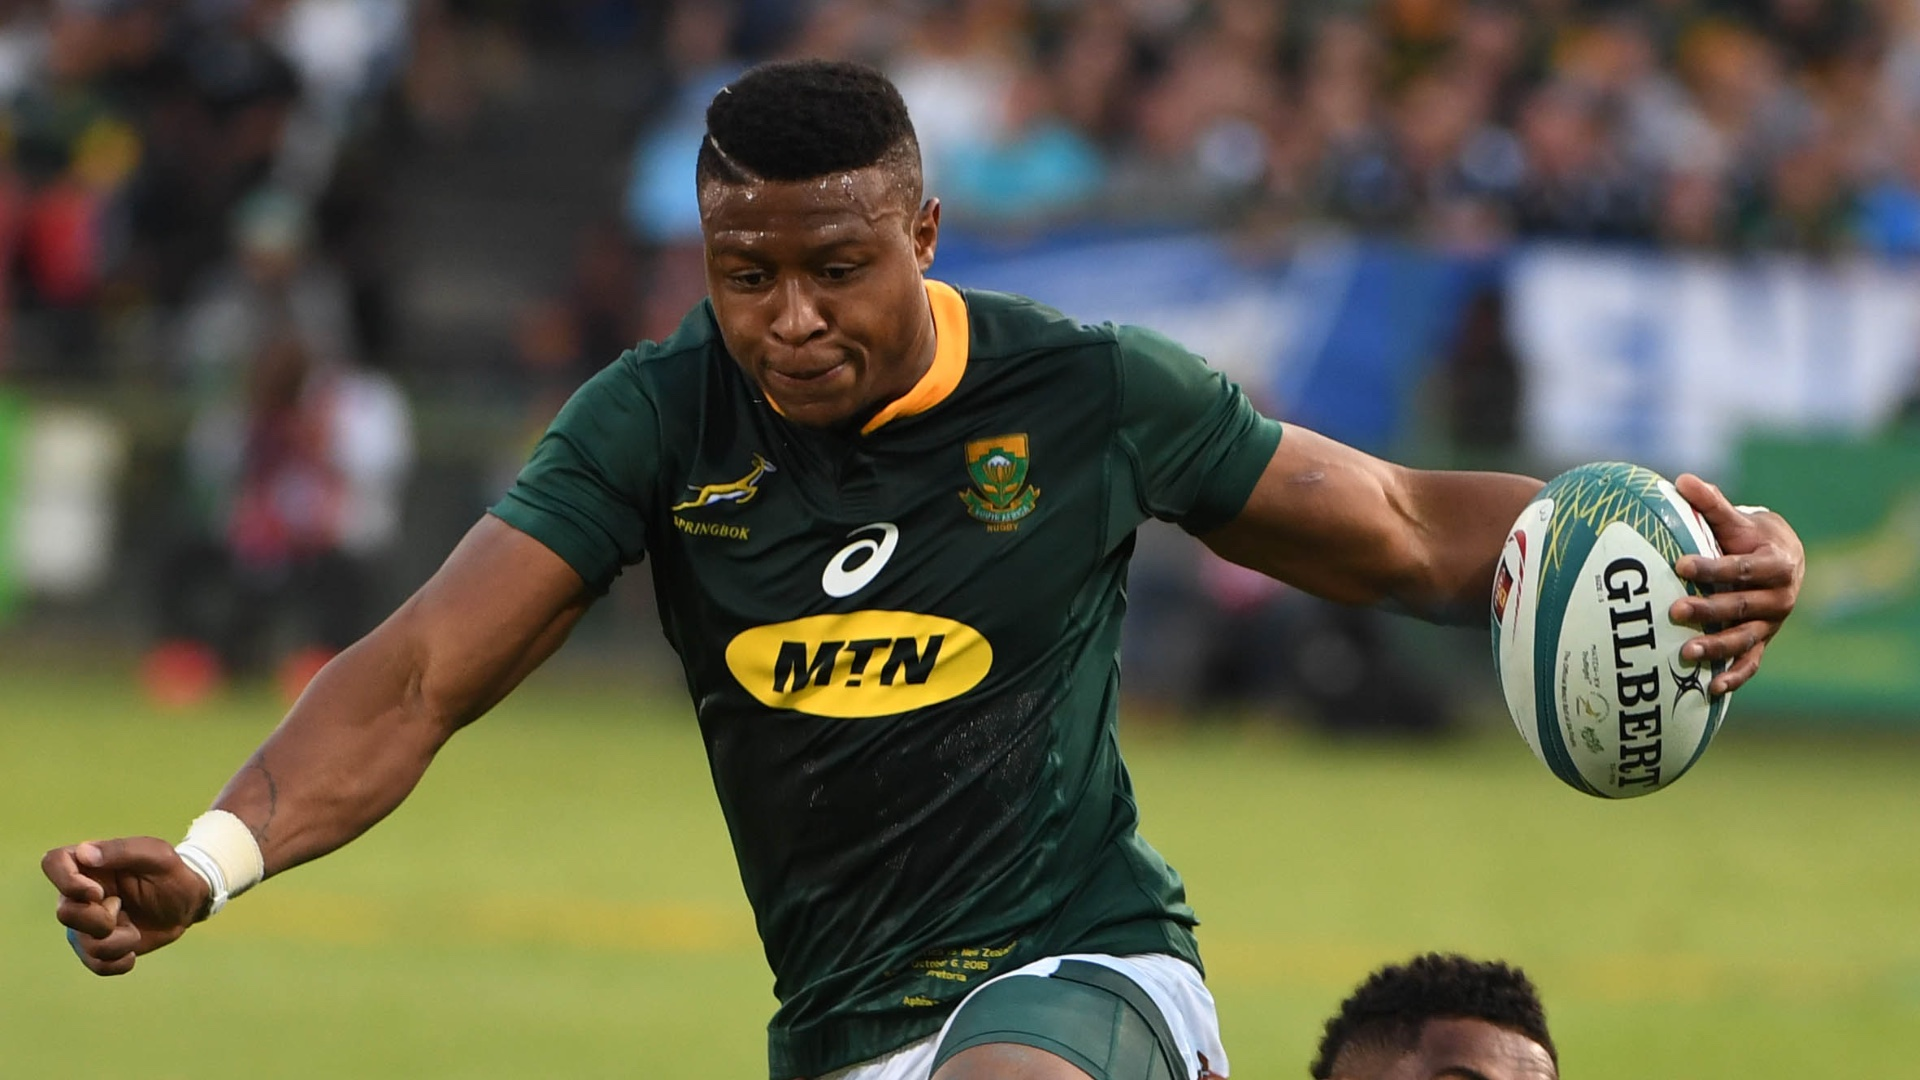 2018 World Rugby Breakthrough Player of the Year Used Multiple Steroids